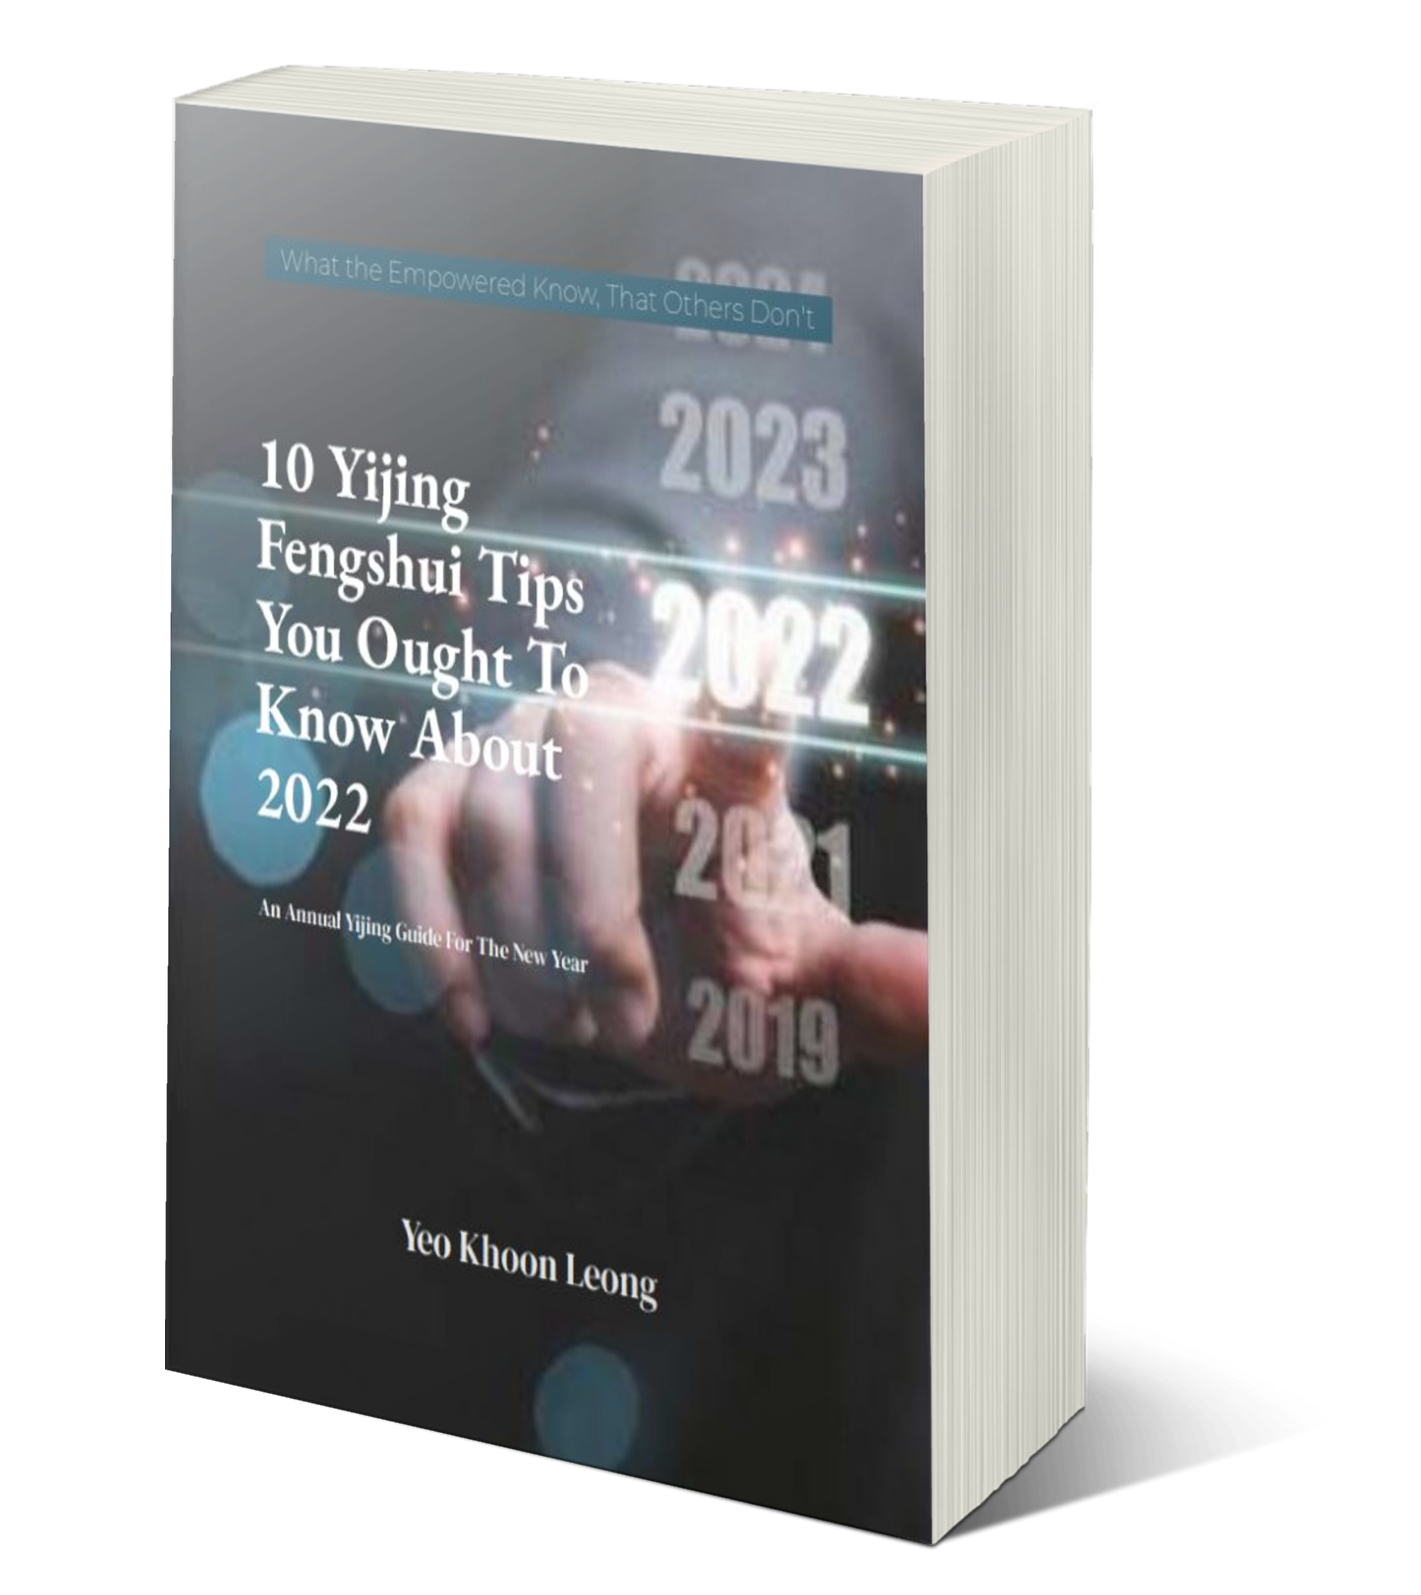 10 Fengshui Tips You Ought To Know About 2022